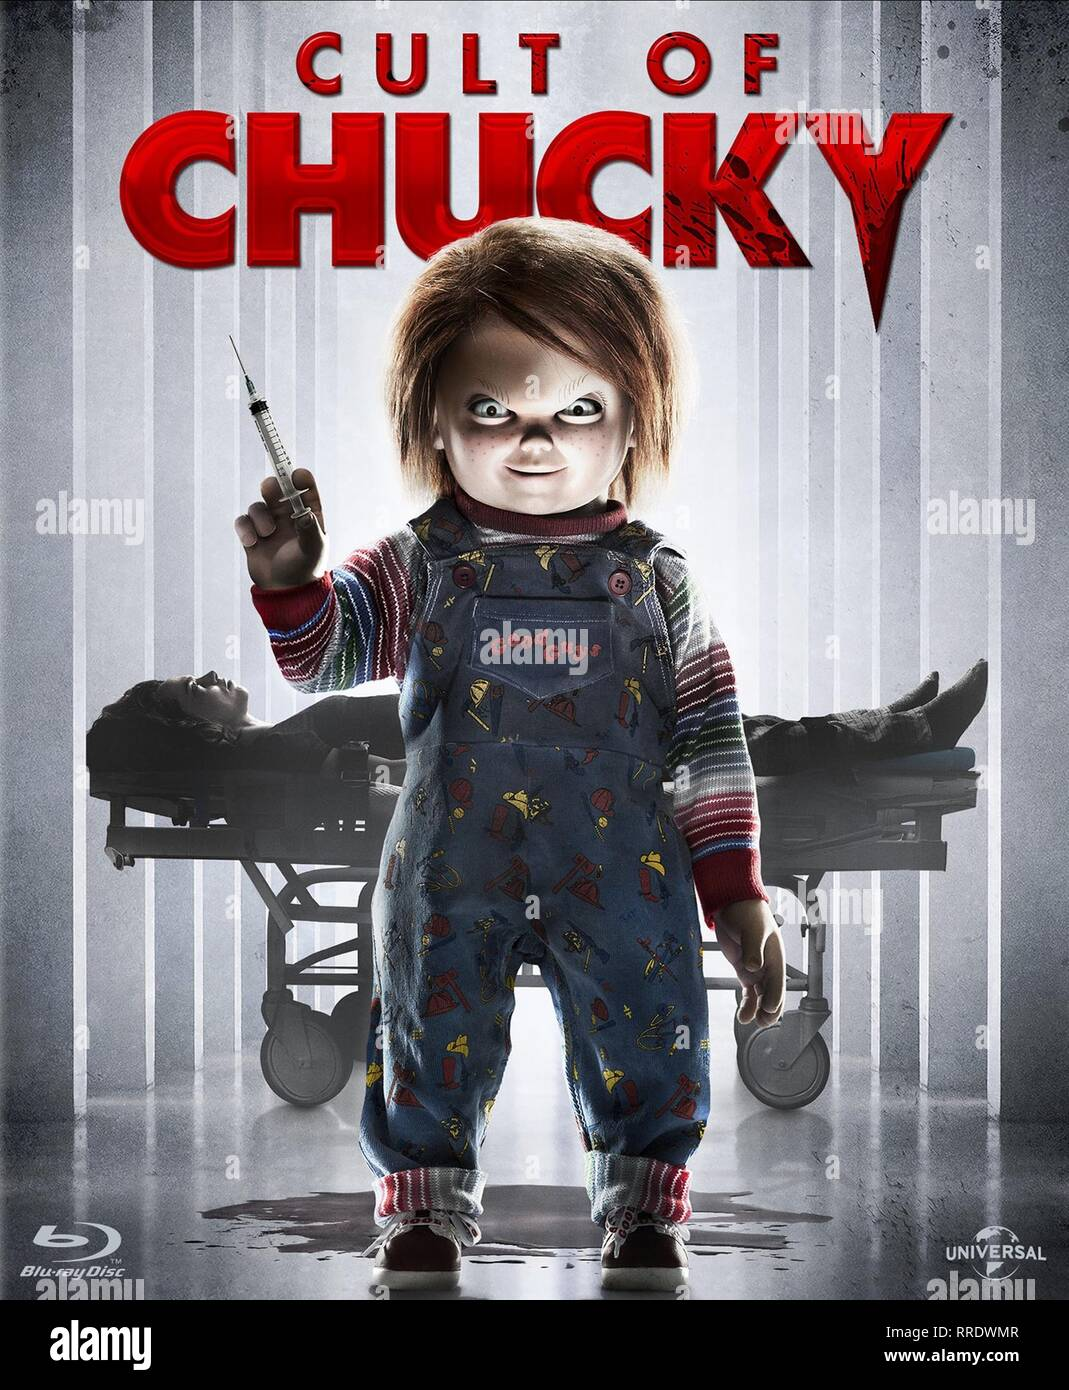 CULT OF CHUCKY, CHUCKY POSTER, 2017 - Stock Image